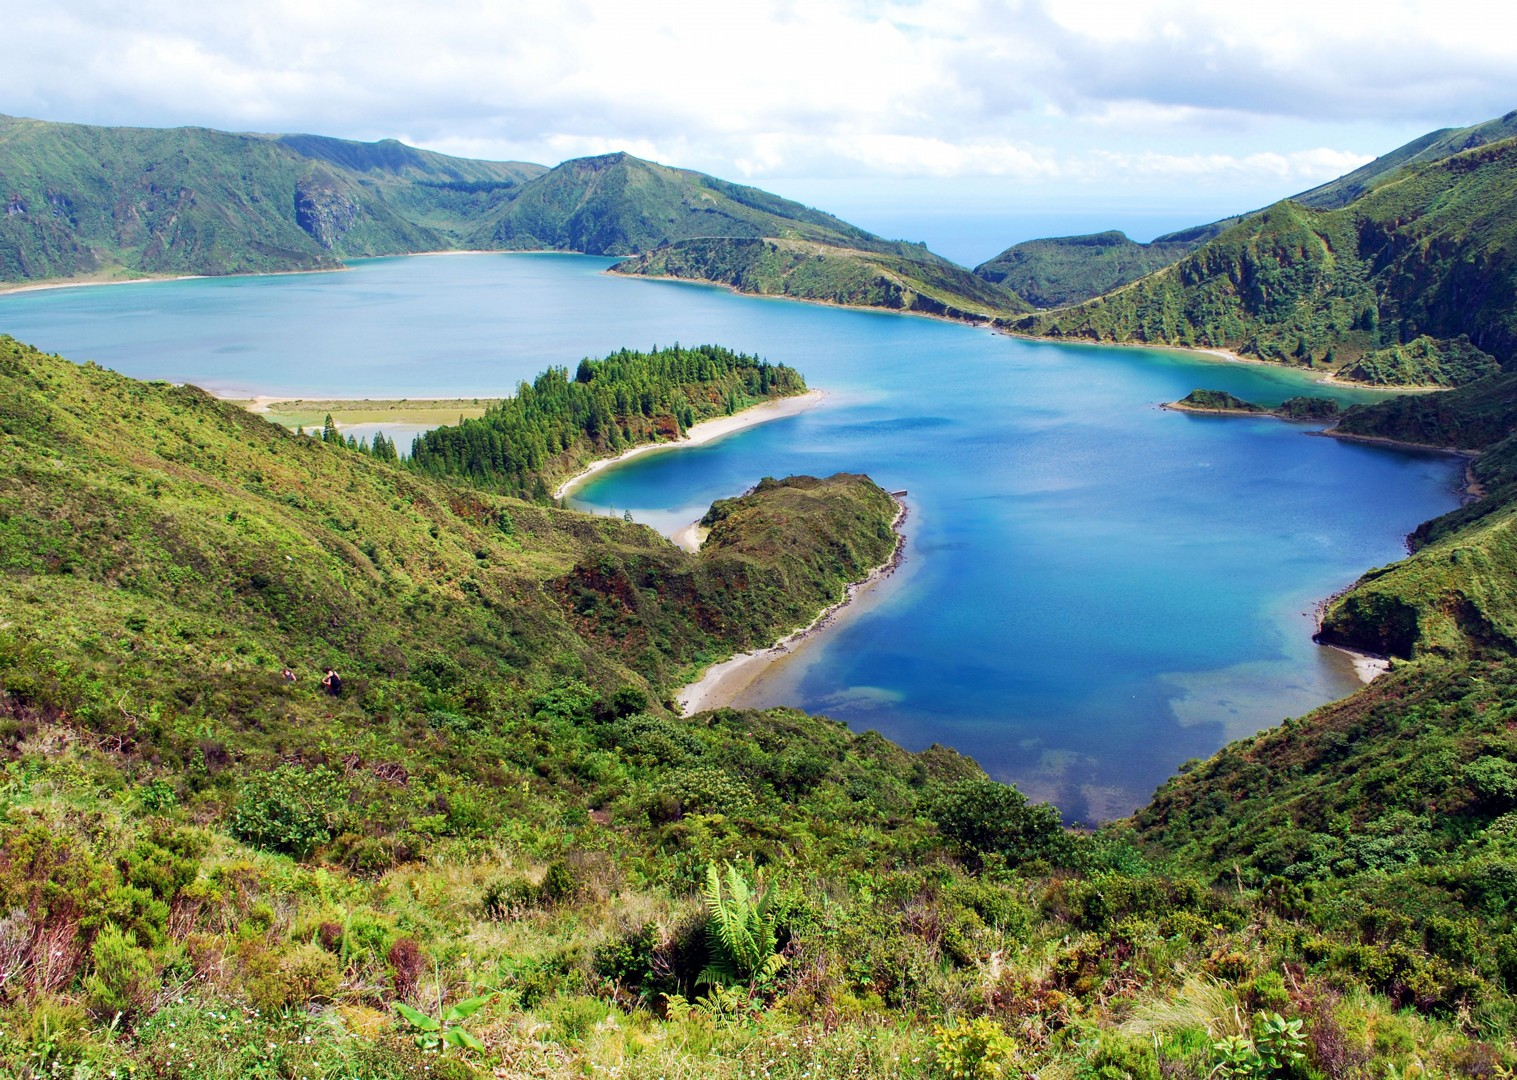 islands-and-volcanoes-guided-cycling-holiday.jpg - The Azores - Islands and Volcanoes - Guided Leisure Cycling Holiday - Leisure Cycling